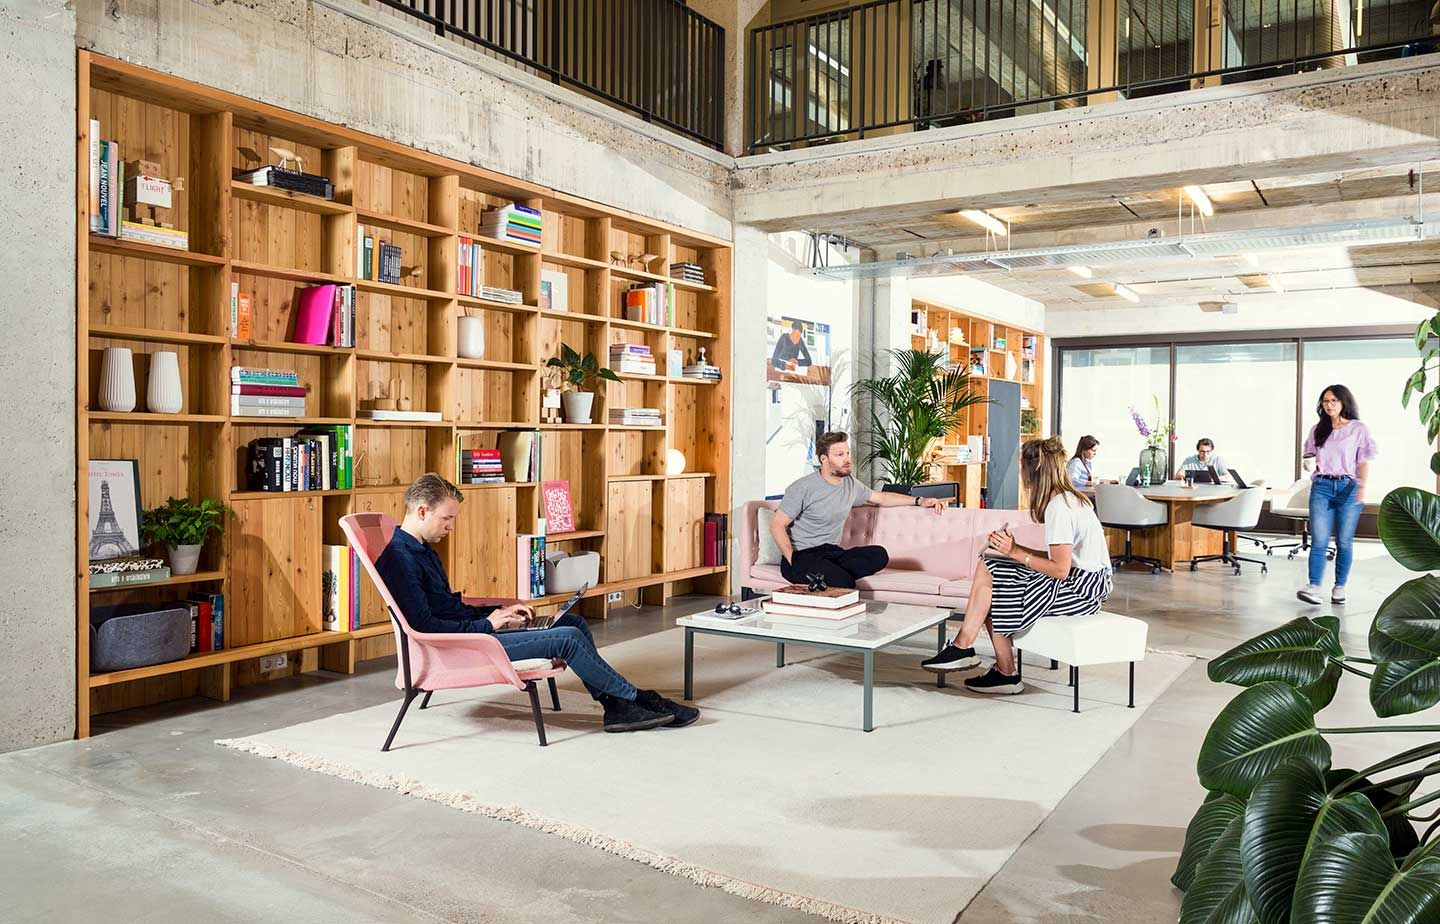 Spaces In Hong Kong Workspaces With Room For Thought In 2020 Coworking Space Design Coworking Office Space Office Space